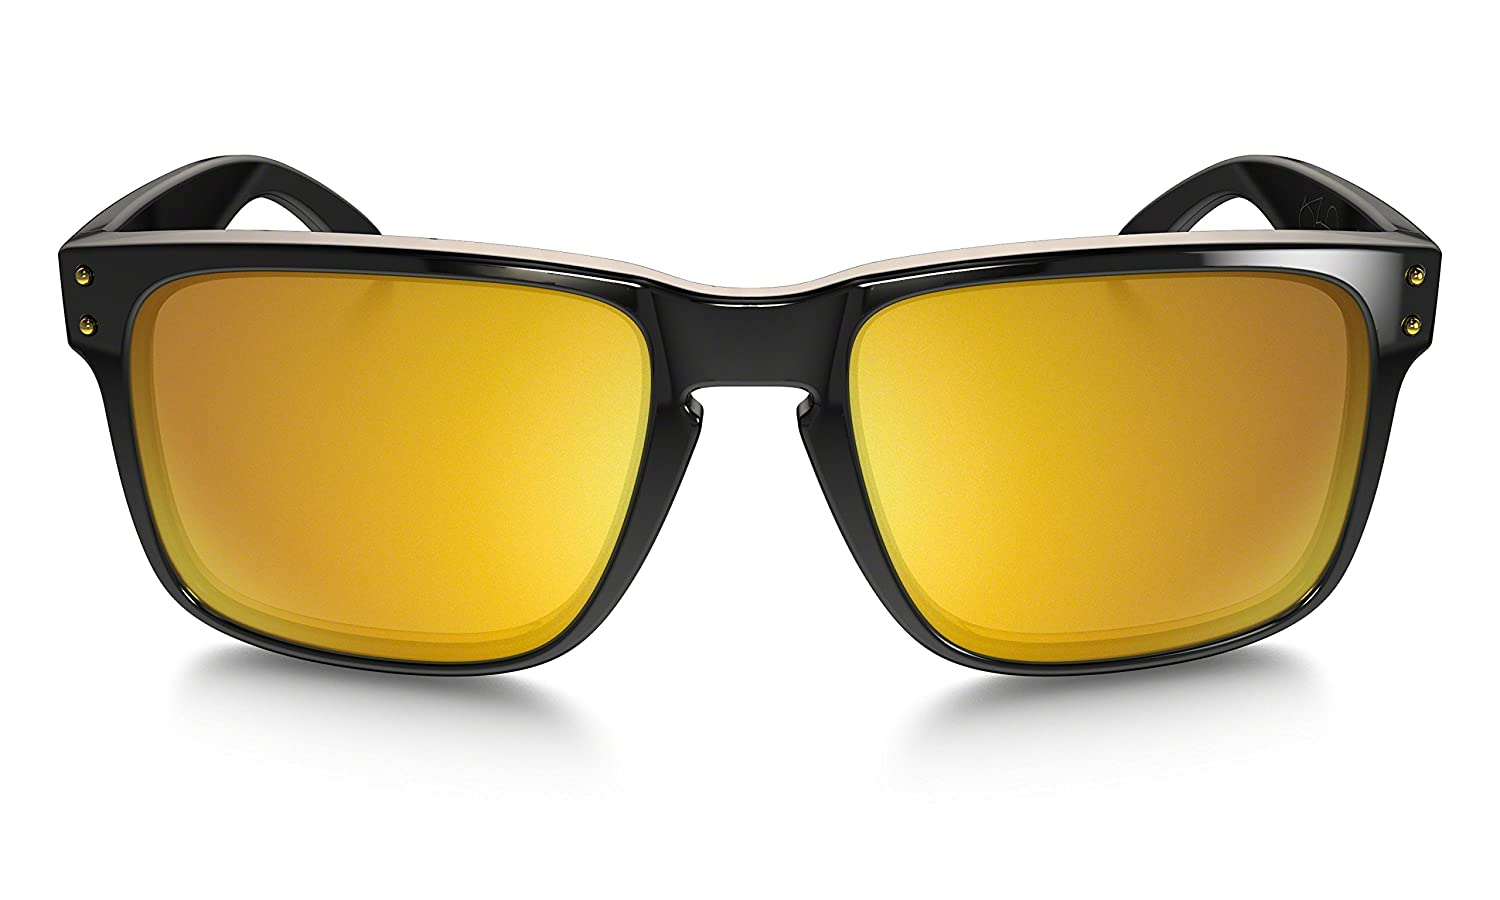 8641d40b32 Amazon.com  Oakley Holbrook Sunglasses  Clothing